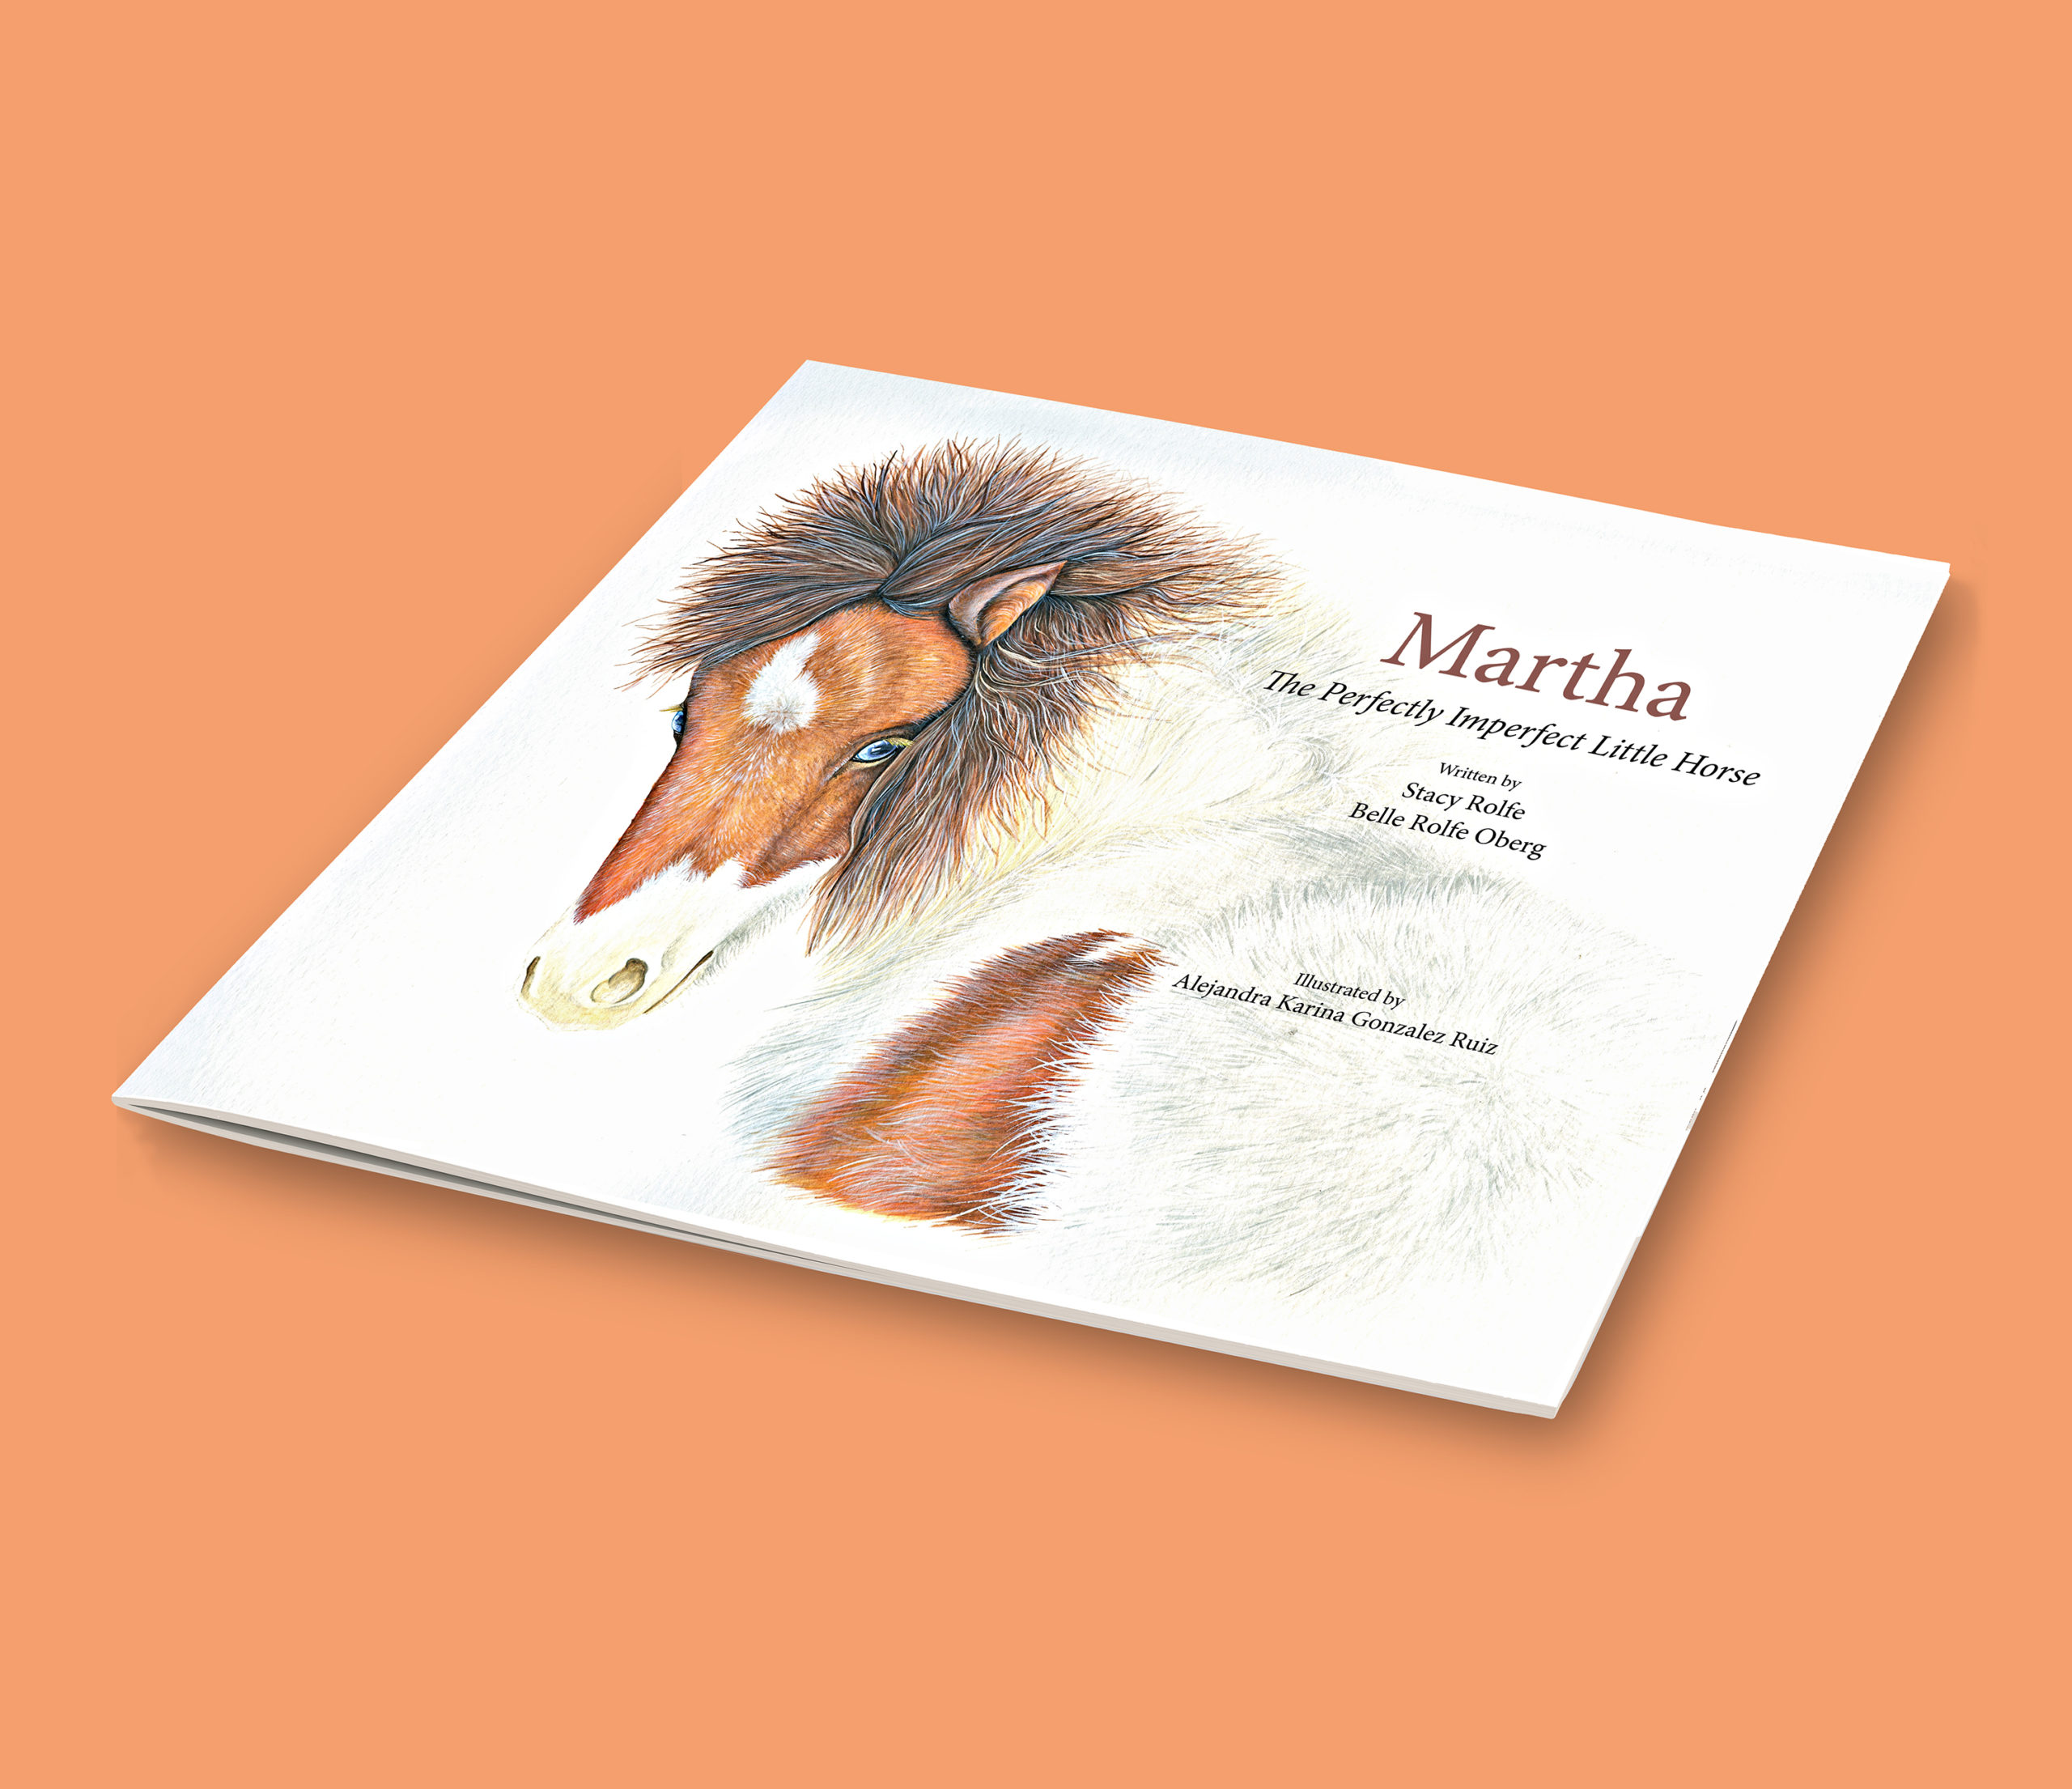 Case Study | Martha: The Imperfectly Perfect Little Horse